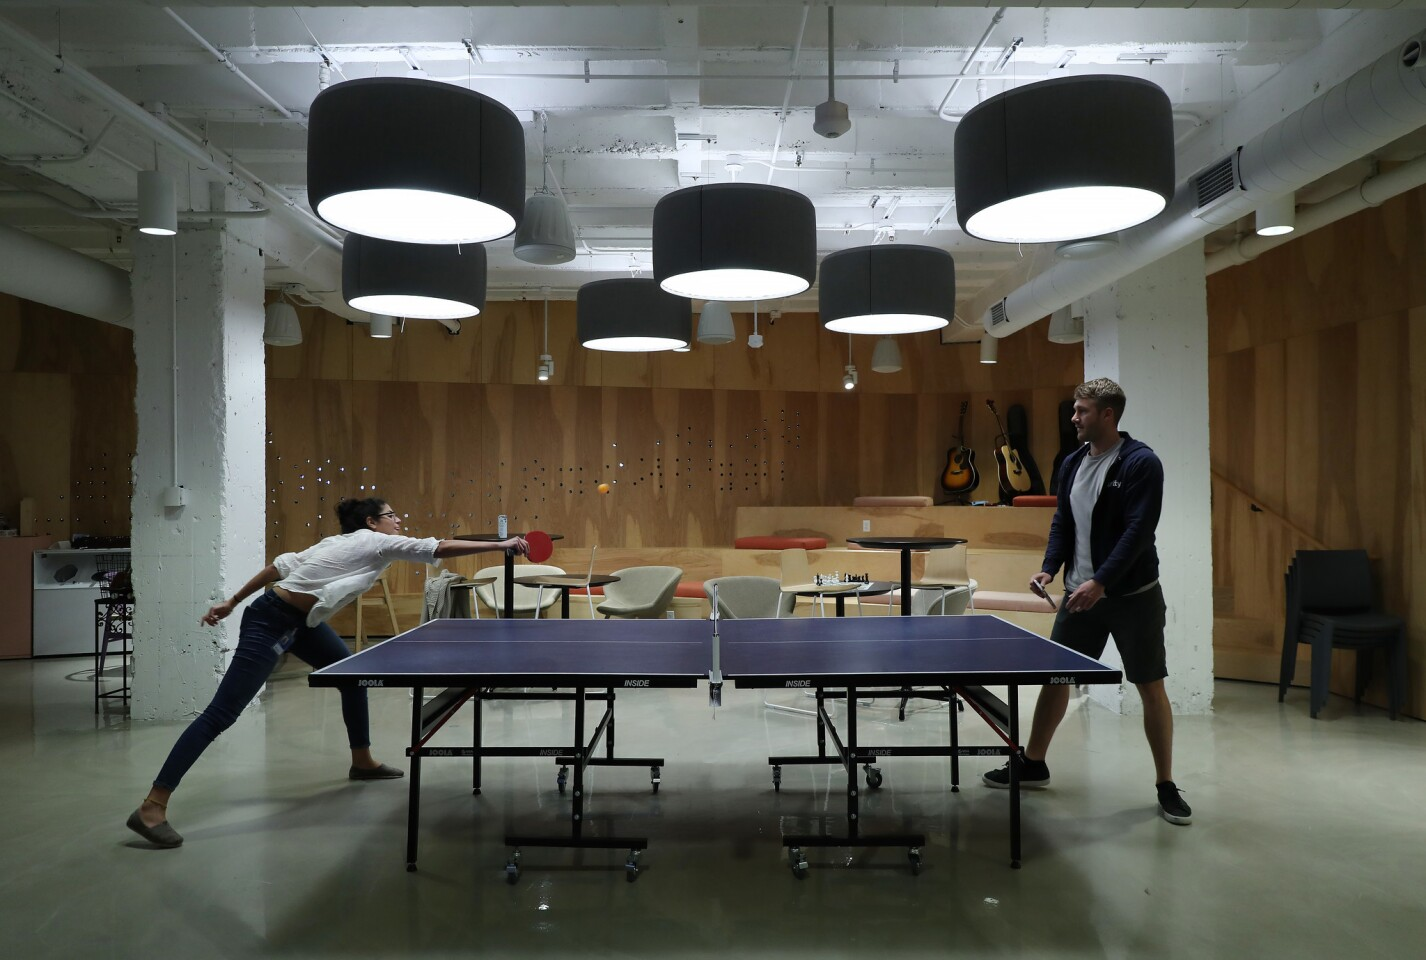 Arity employees Jade Isaac, left, and Max Plokita play table tennis at the company's office inside the Merchandise Mart Tuesday, June 19, 2018, in Chicago.